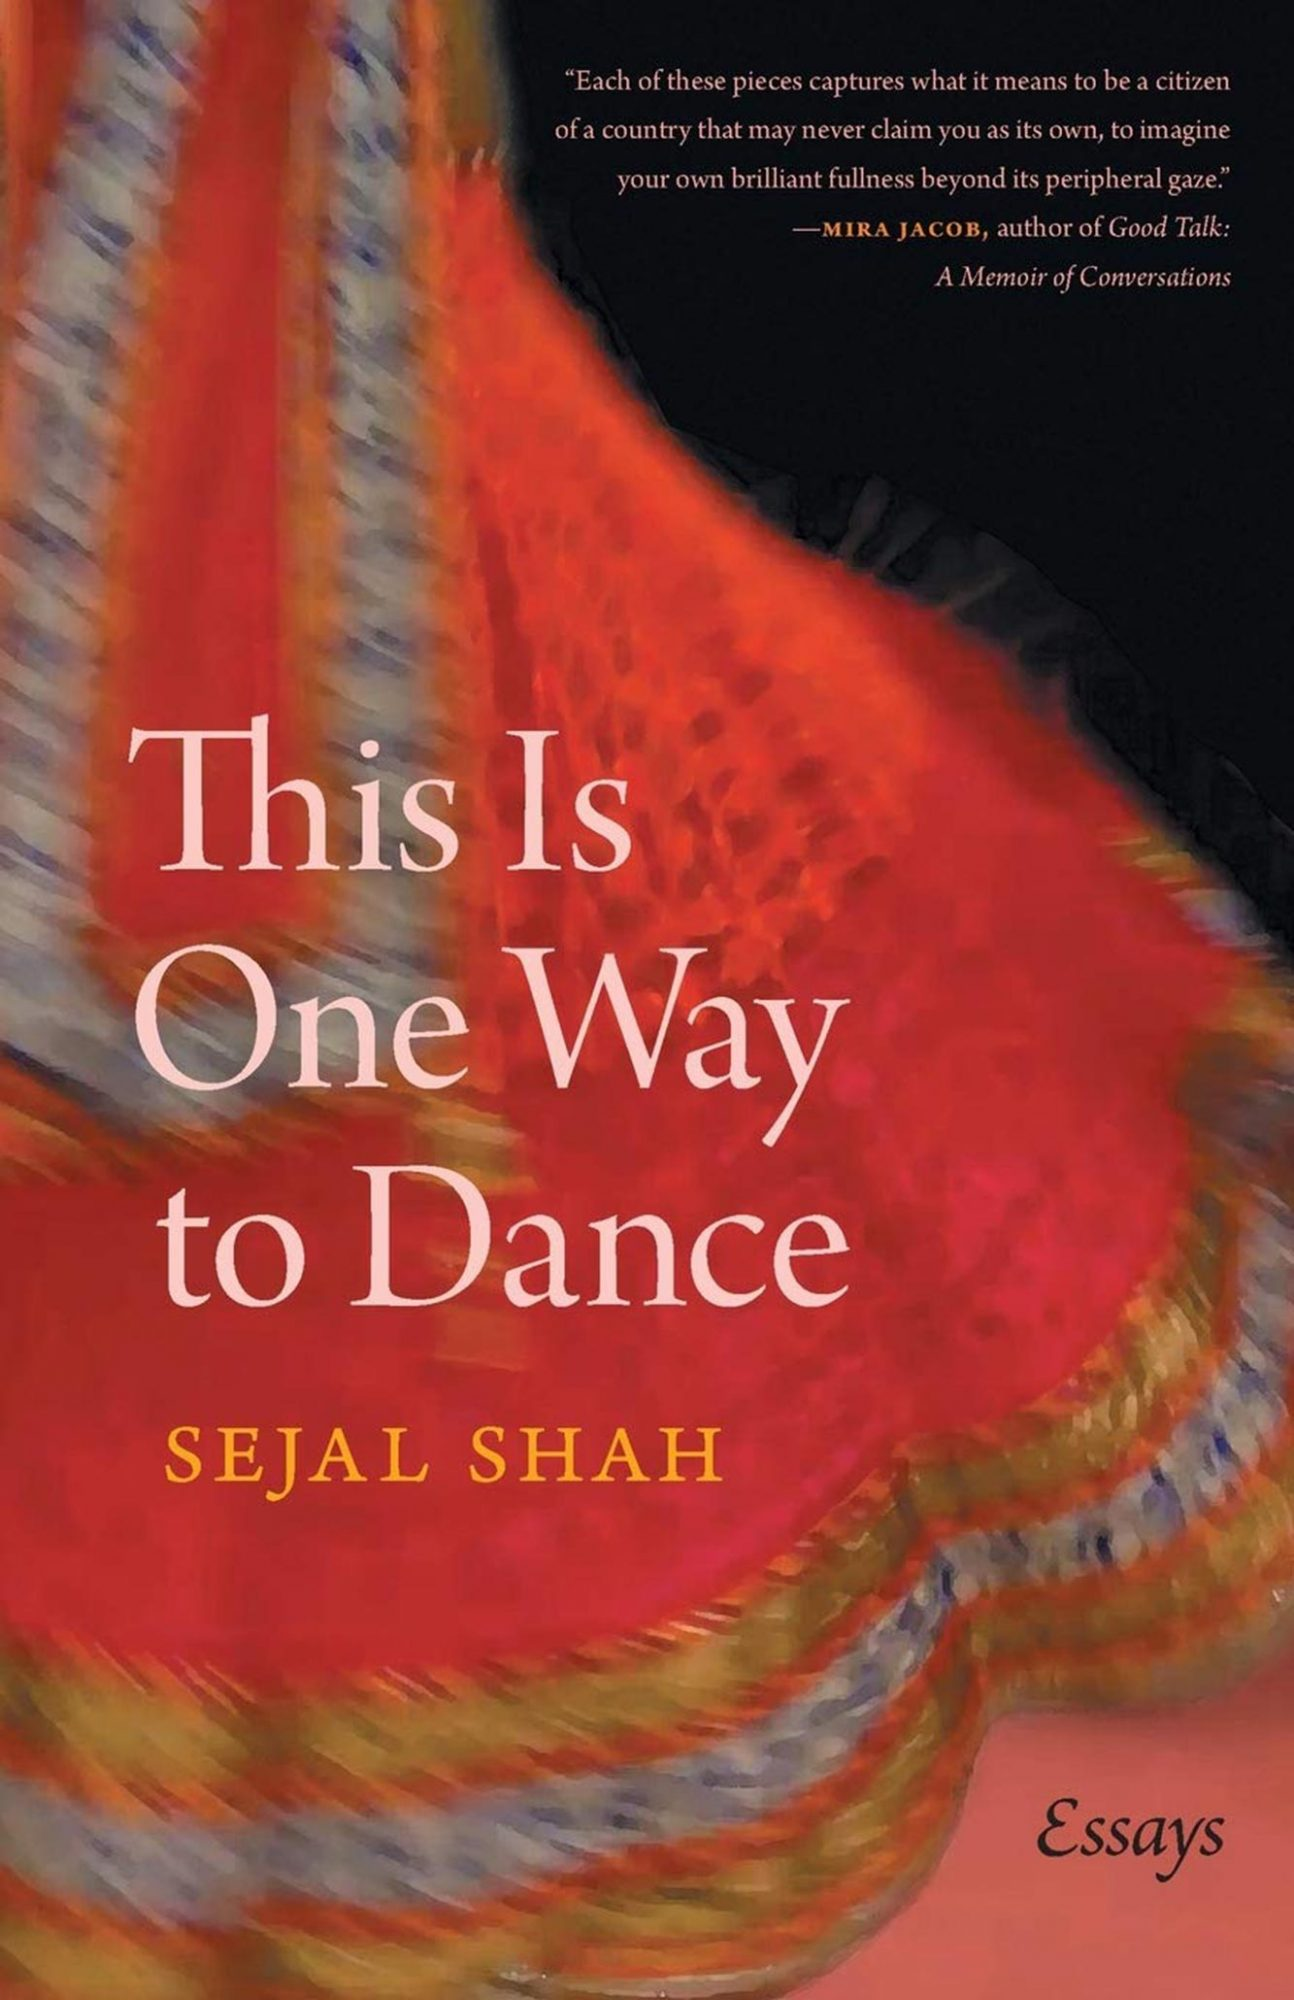 AAPI Books This Is One Way To Dance by Sejal Shah